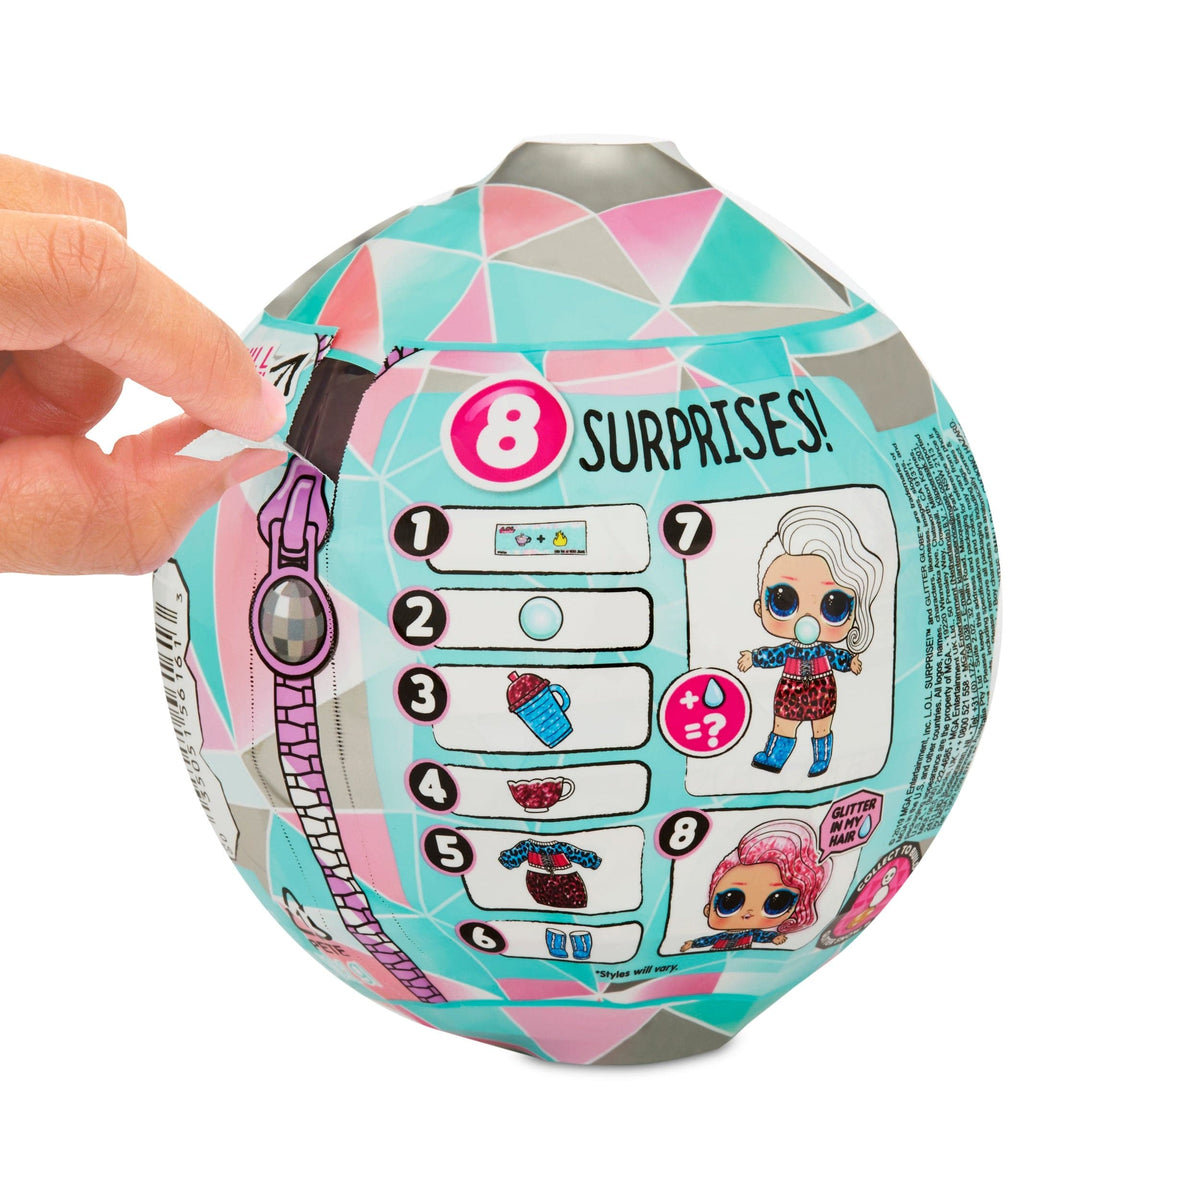 L.O.L. Surprise Glitter Globe Assorted Styles